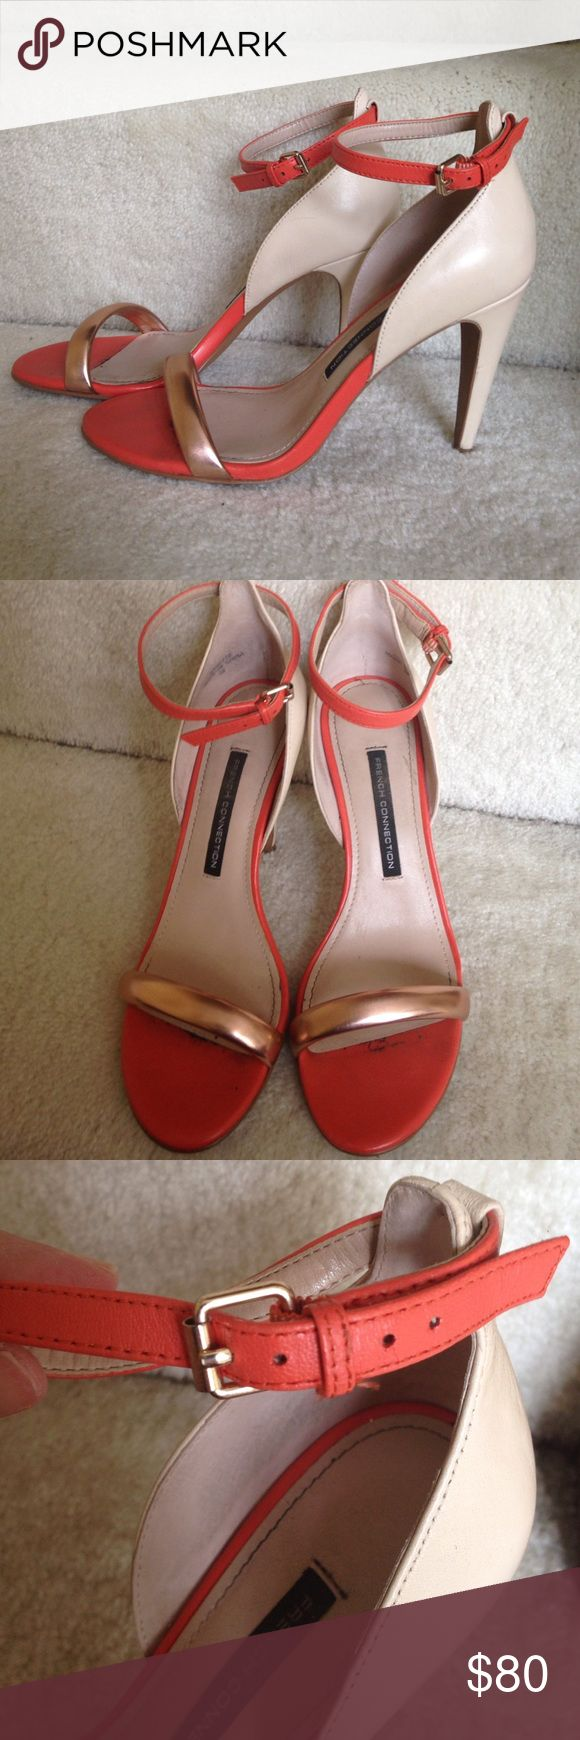 Adorable French connection ankle strap heels Love the orange and rose gold combo. Perfect for warmer months. Worn only once! French Connection Shoes Heels